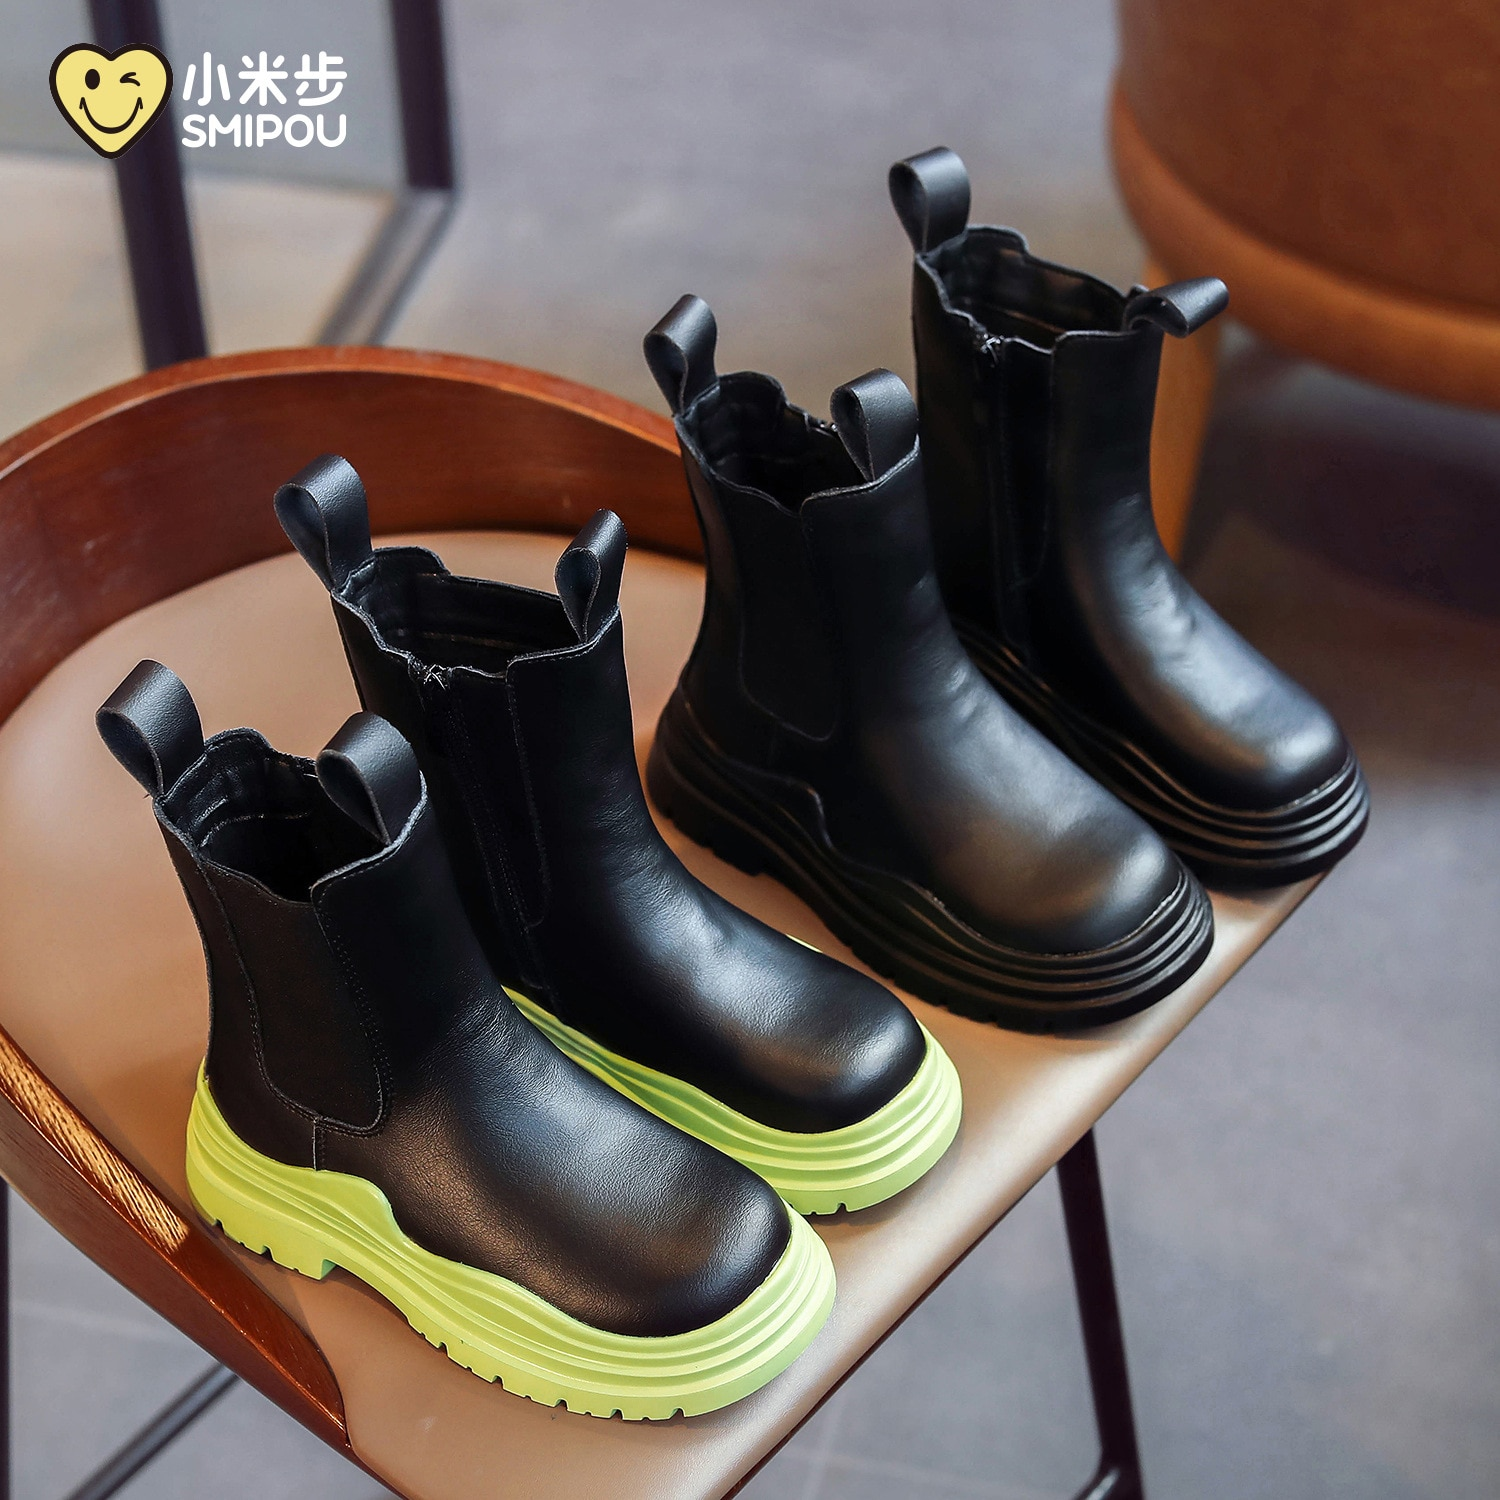 Girls' Mid-tube Boots Autumn and Winter New Children's Thick-soled Waterproof Single Boots Girls Retro Soft-soled Cowhide Boots